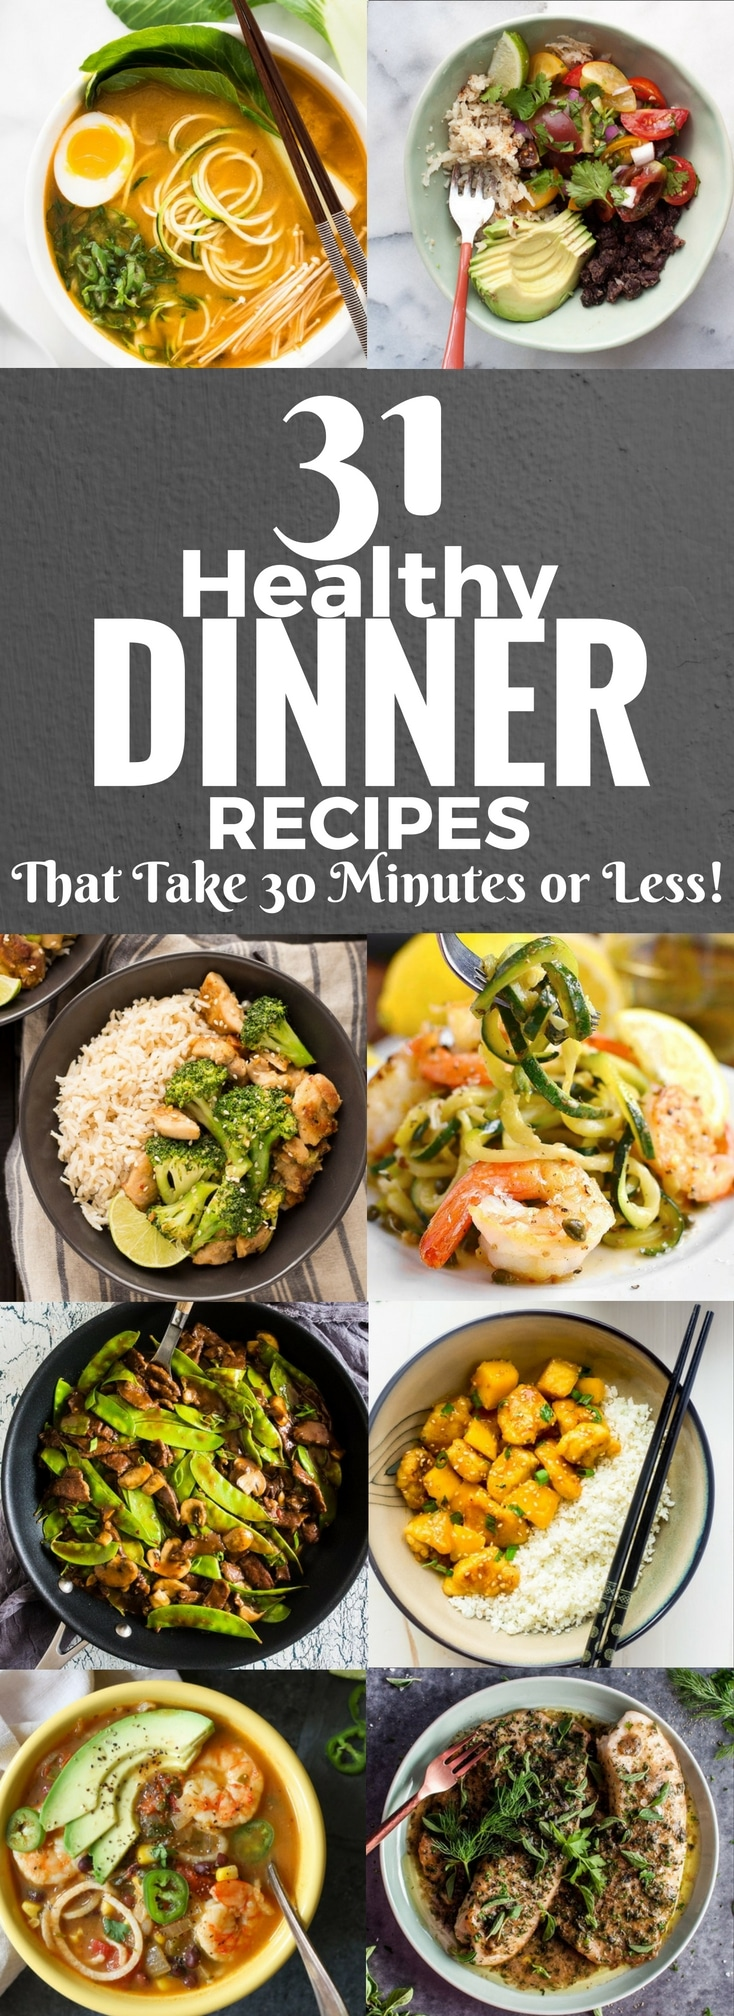 31 healthy dinner recipes that take 30 minutes or less fox and briar - Foods never wash cooking ...